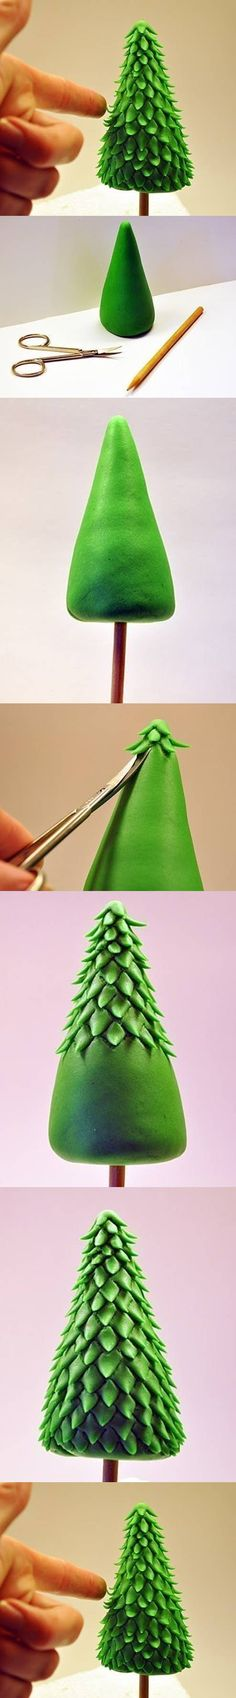 "<input+type=""hidden""+value=""""+data-frizzlyPostContainer=""""+data-frizzlyPostUrl=""http://www.usefuldiy.com/diy-clay-christmas-tree-internet-tutorial/""+data-frizzlyPostTitle=""DIY+Clay+Christmas+Tree+Internet+Tutorial""+data-frizzlyHoverContainer=""""><p>>>>+Craft+Tutorials+More+Free+Instructions+Free+Tutorials+More+Craft+Tutorials</p>"